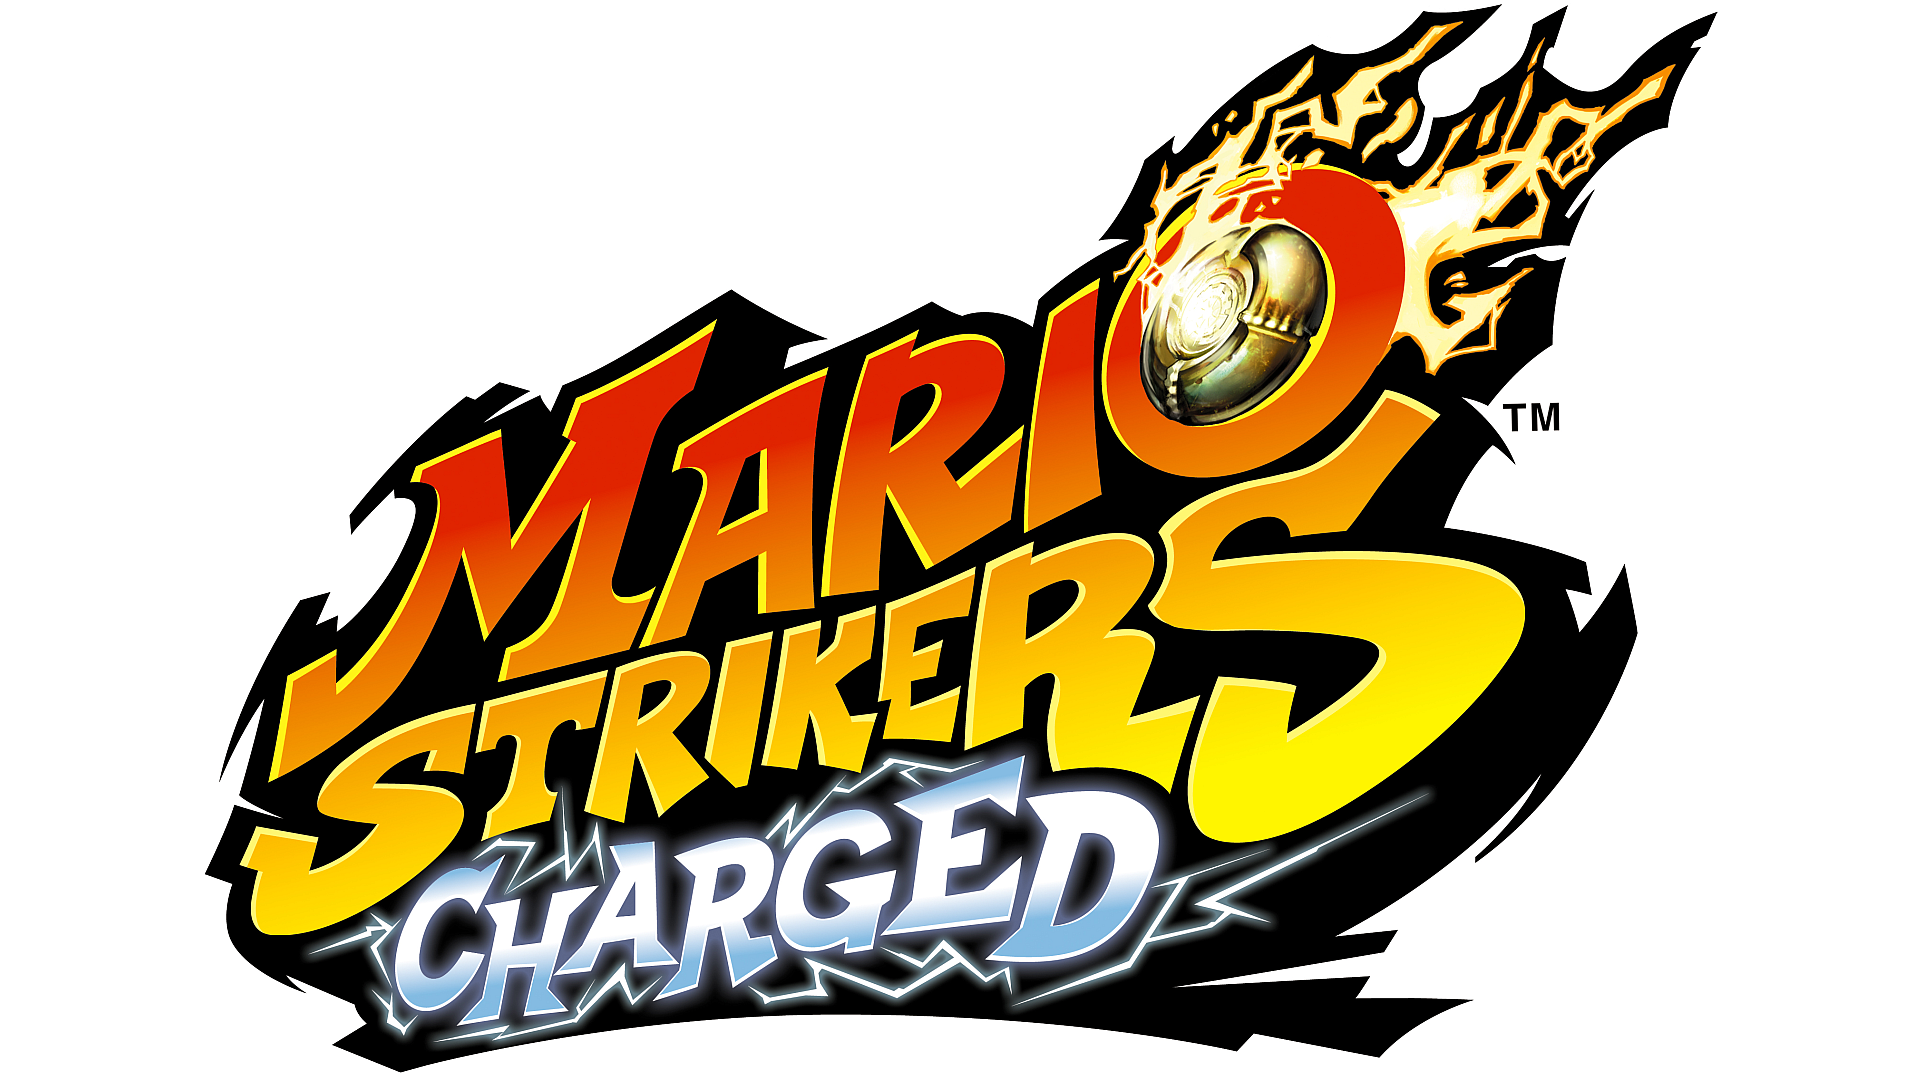 Mario Strikers Charged Logo